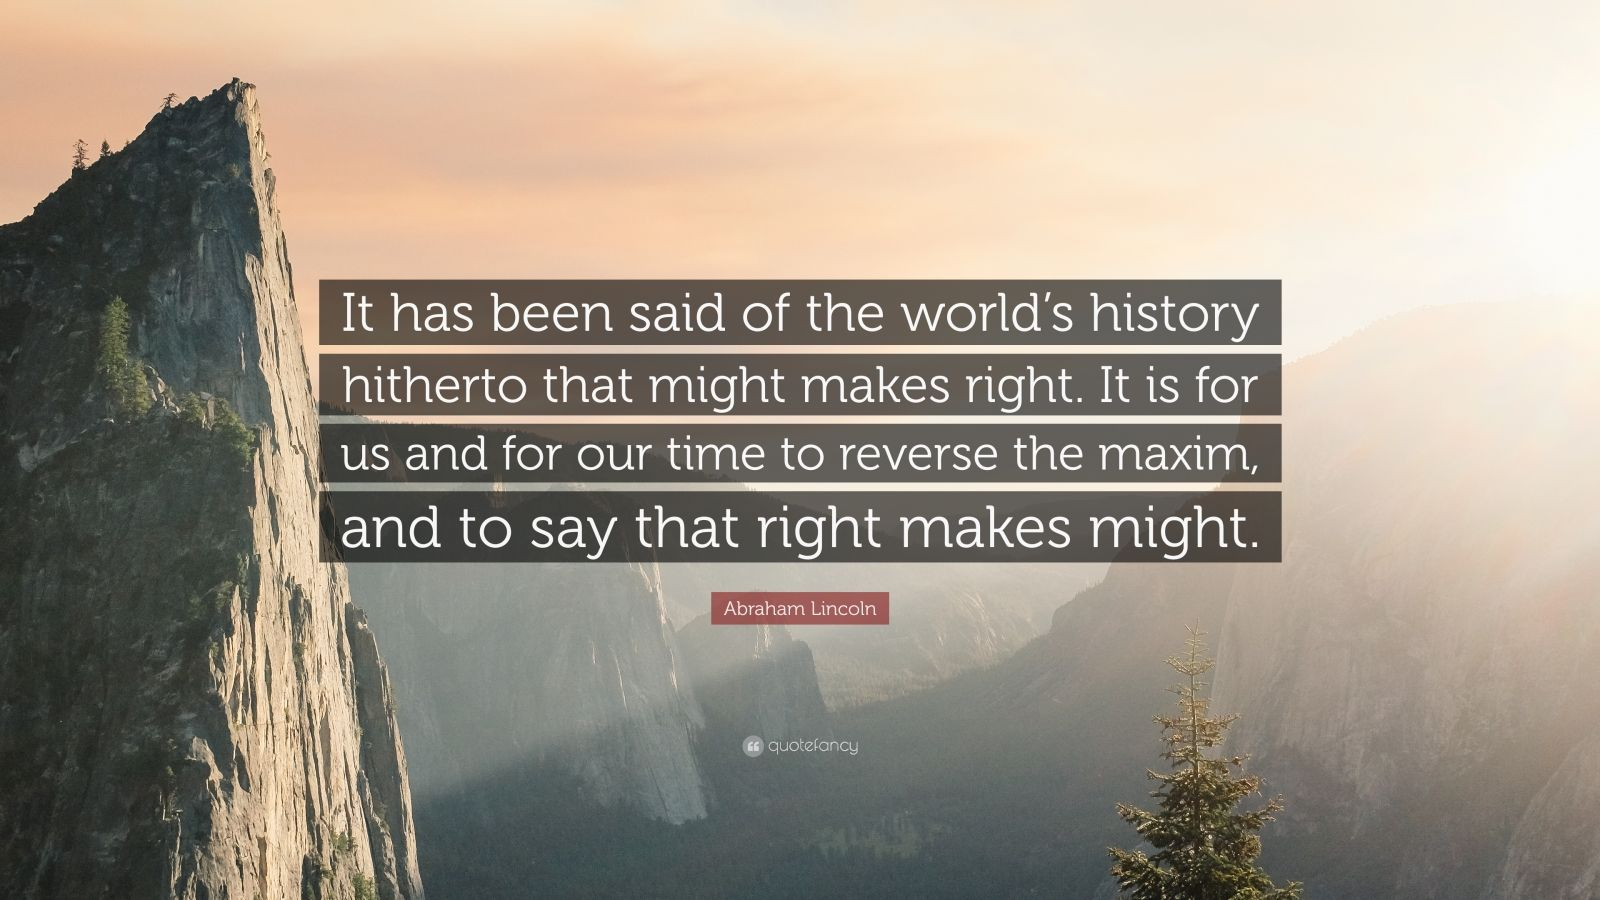 """Abraham Lincoln Quote: """"It has been said of the world's history hitherto that might makes right. It is for us and for our time to reverse the maxim, and to say that right makes might."""""""